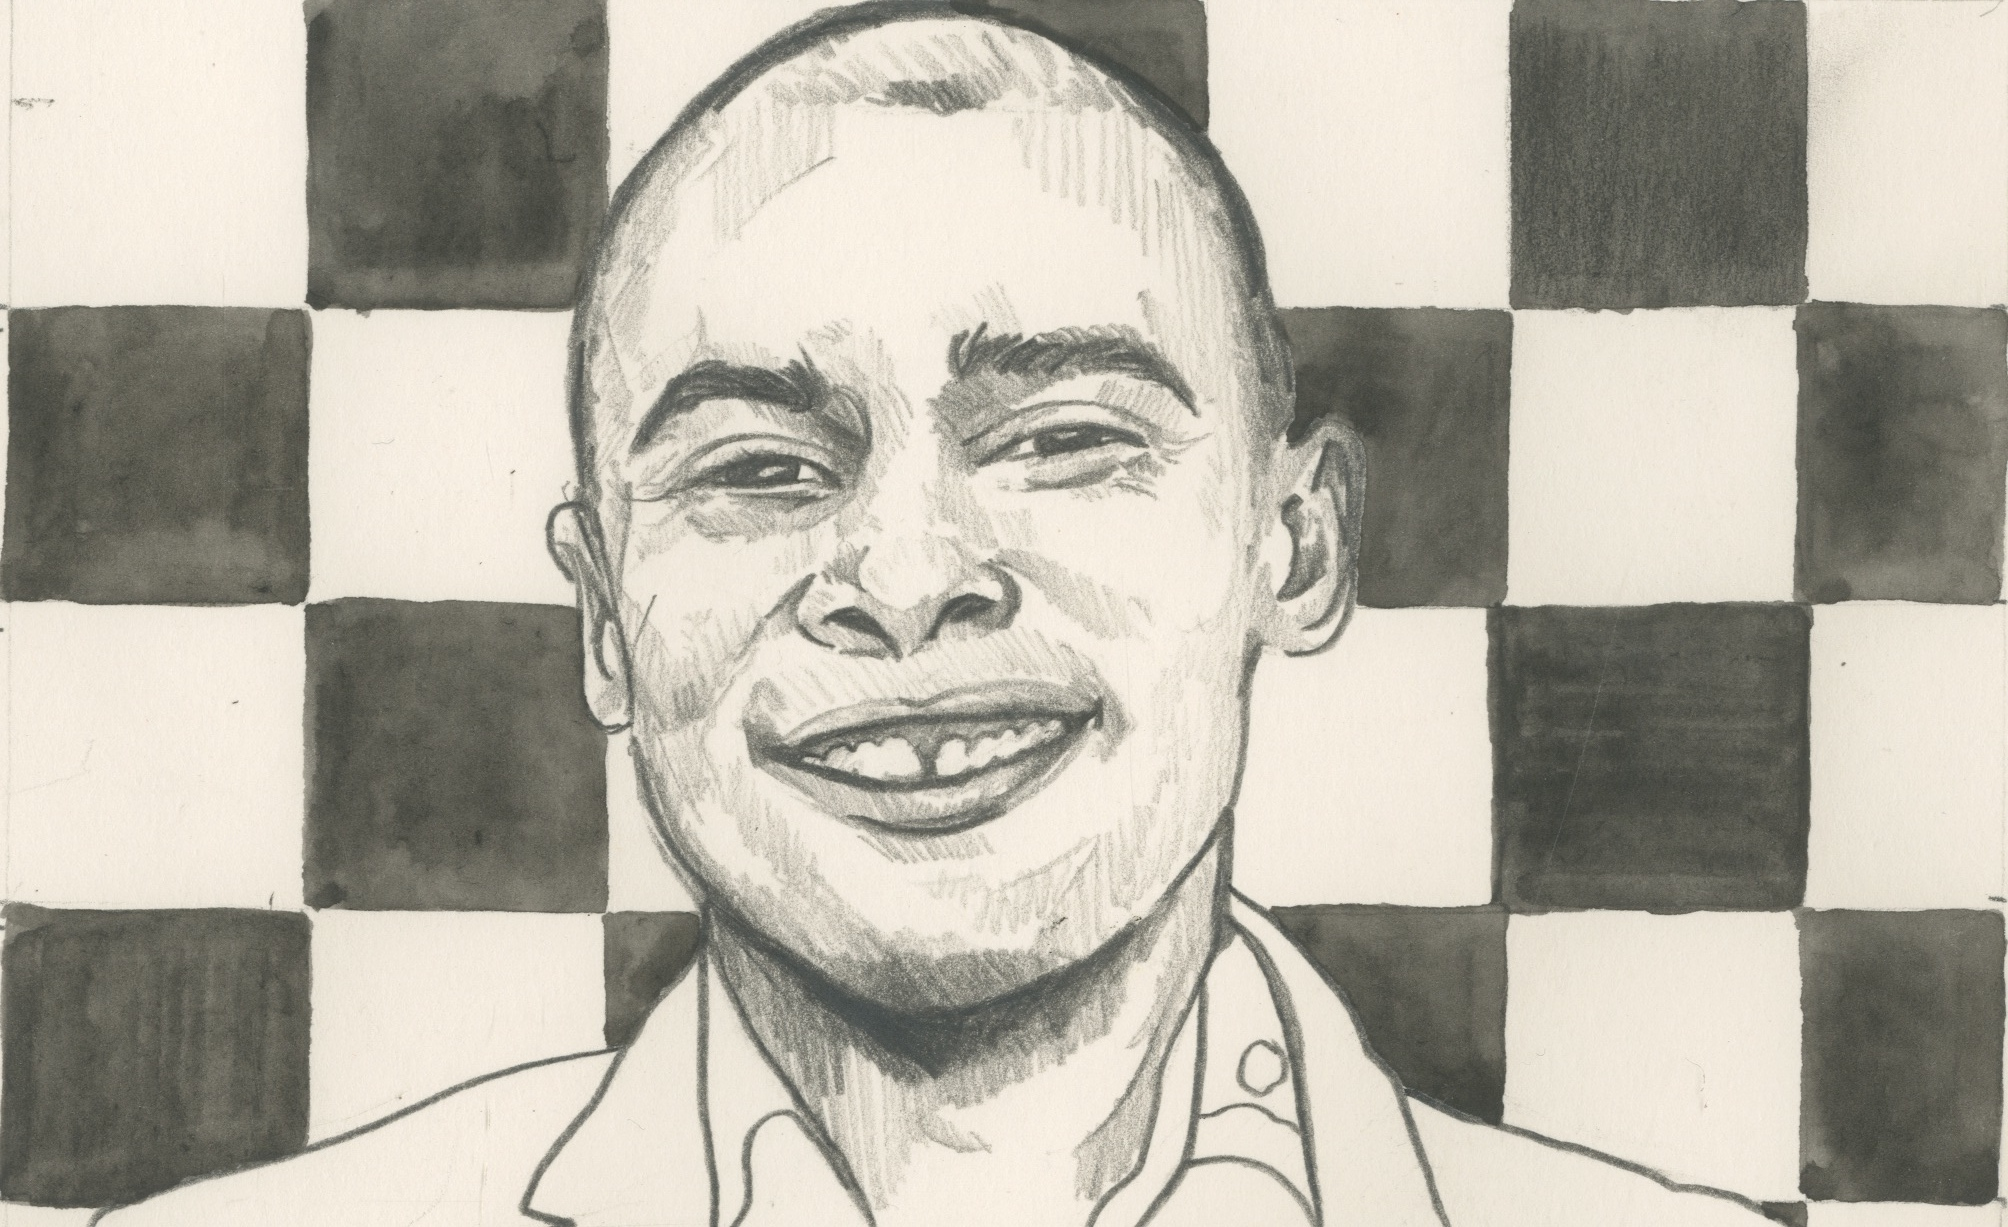 09/01/15 South African Kenny Solomon who escaped township violence to become a chess grandmaster